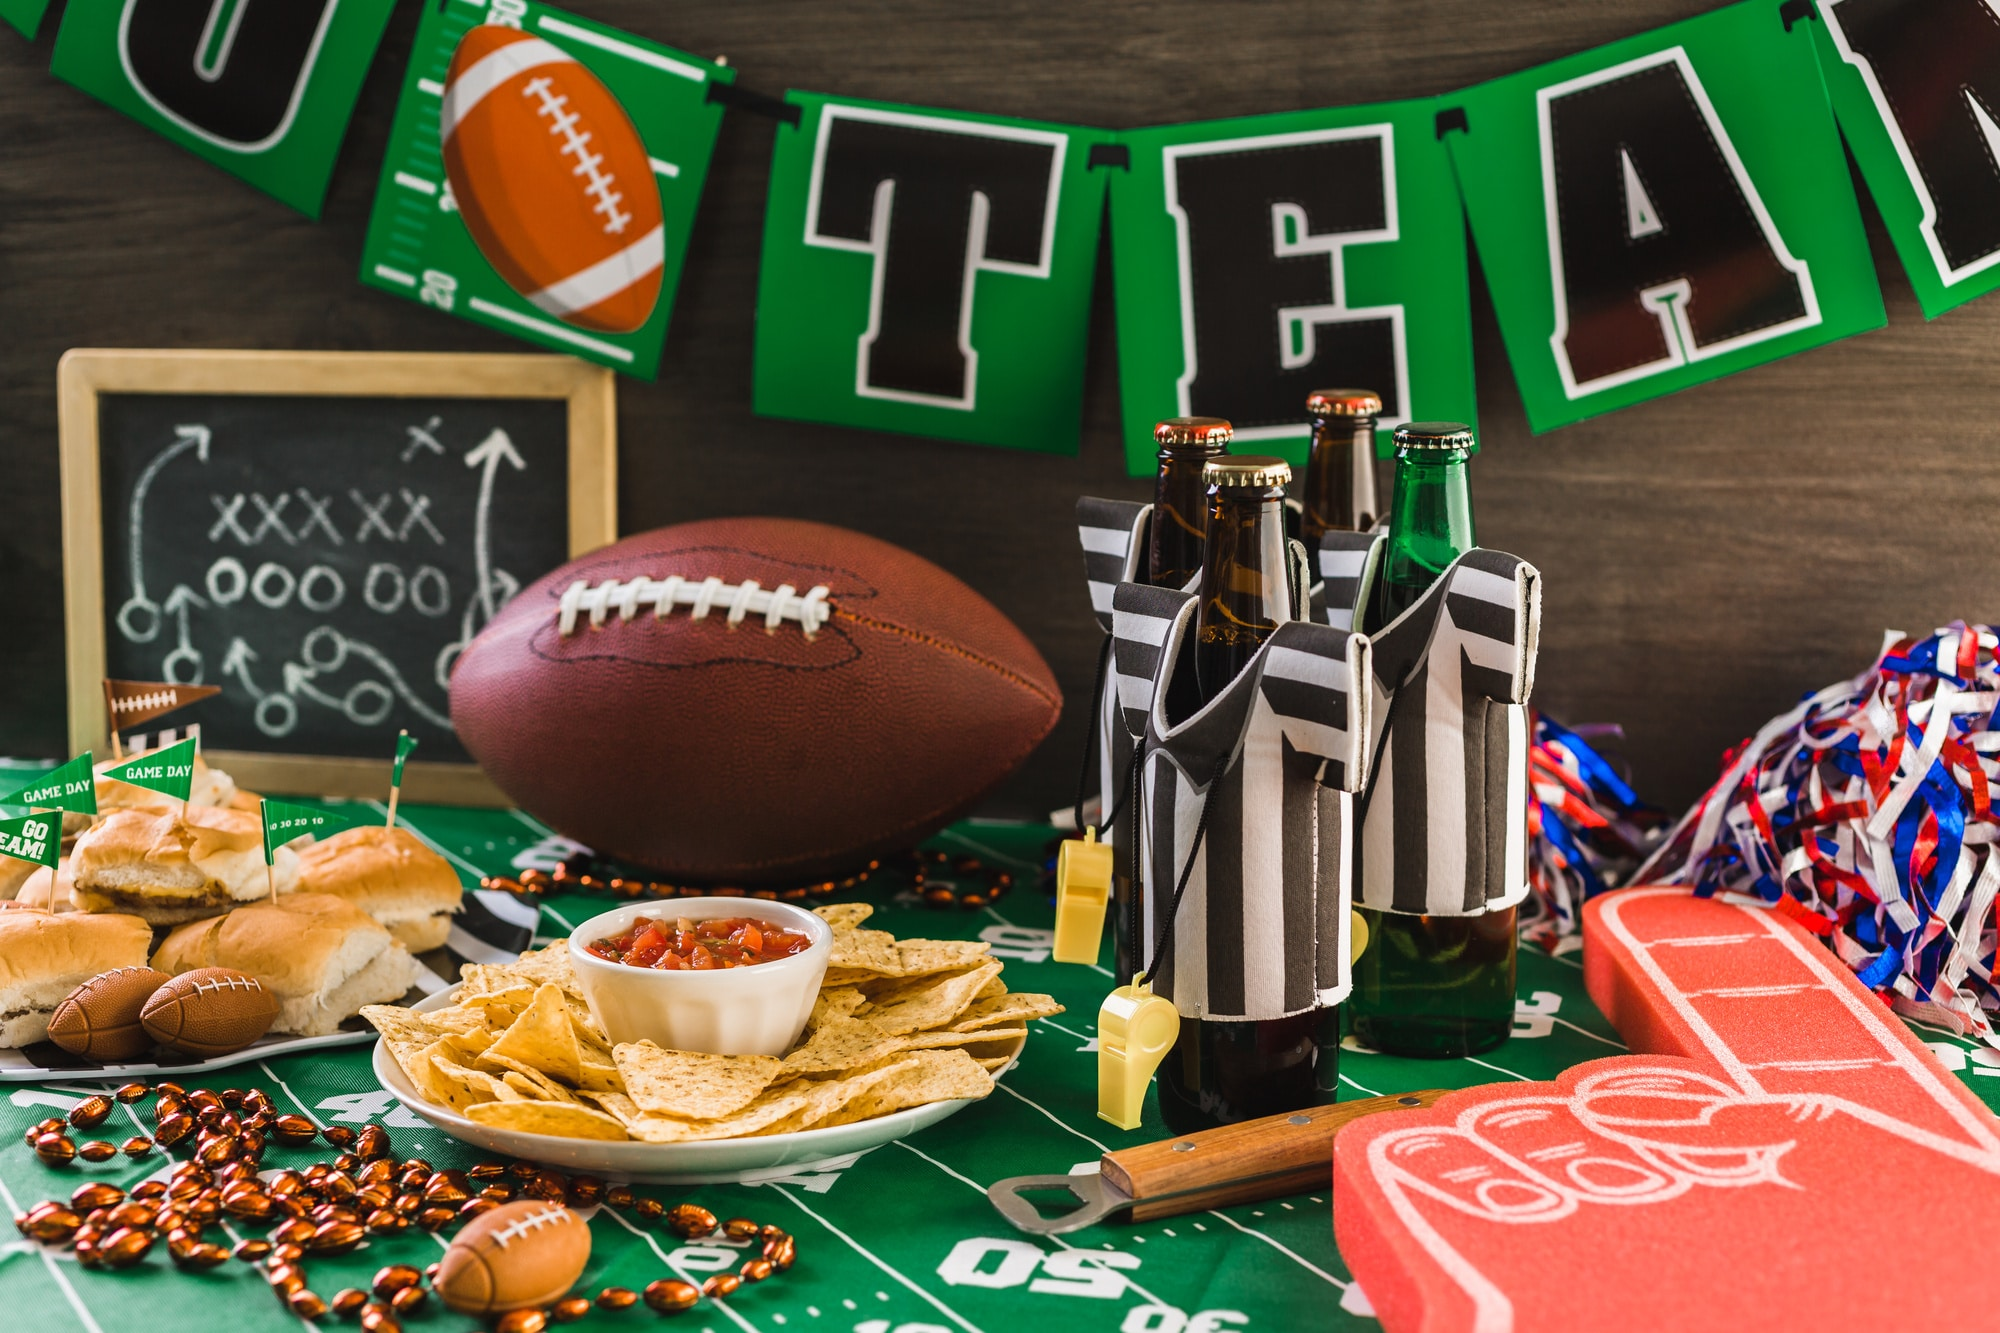 5 Catering Tips for Your Super Bowl Party